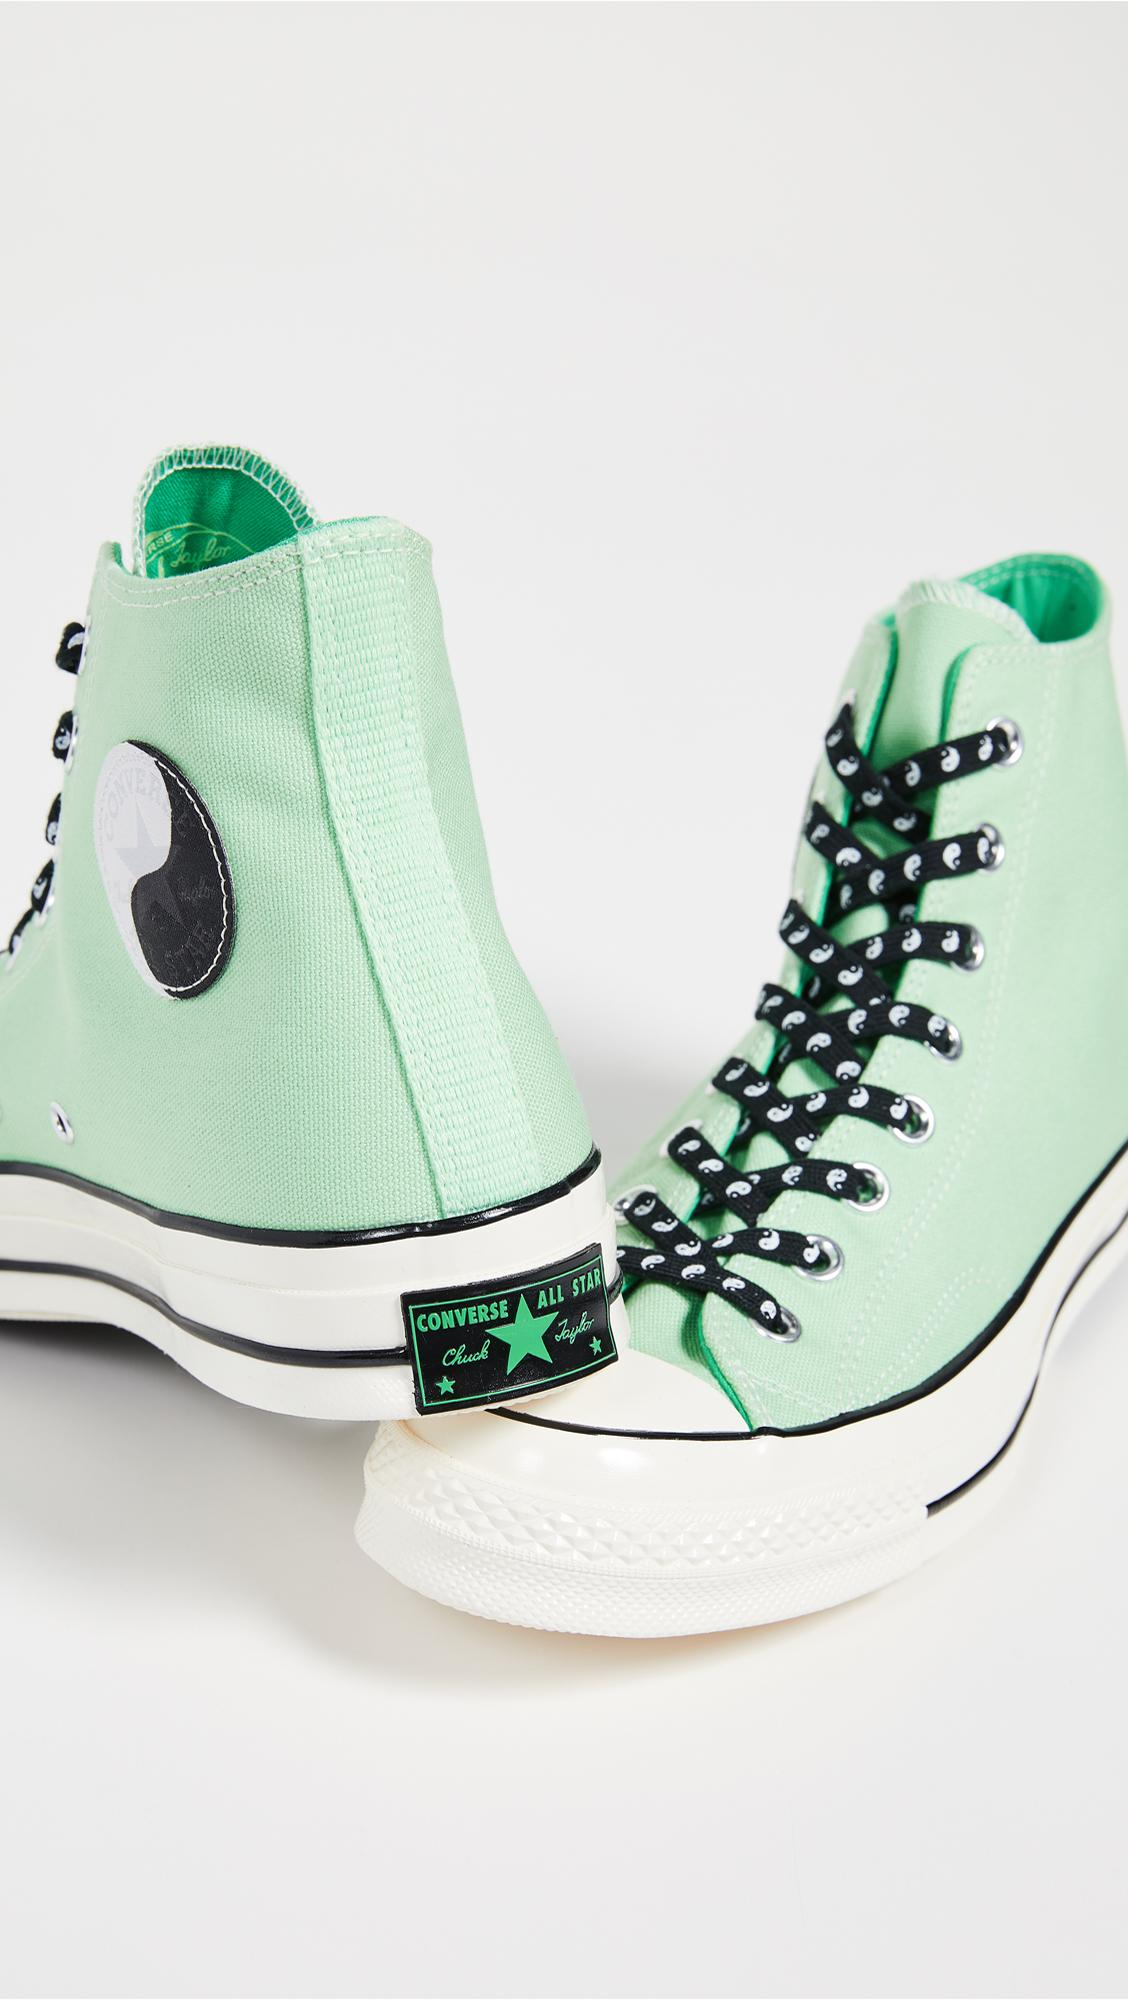 29976fb3d75 Converse Chuck 70 High Top Psy-kicks Sneakers in Green for Men - Lyst